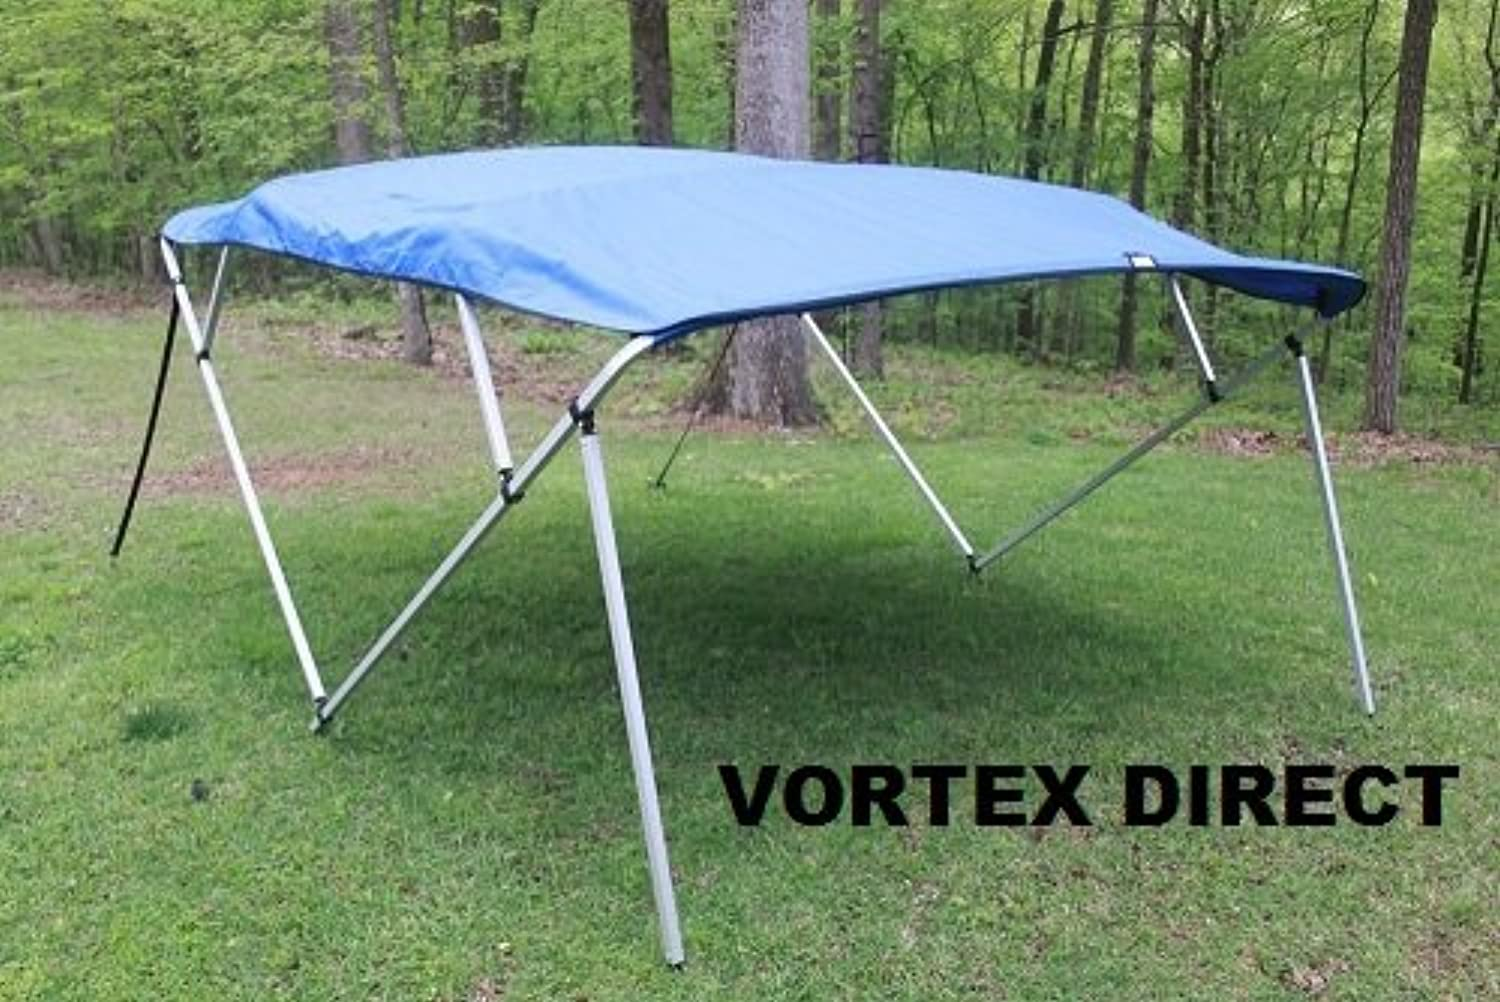 ROYAL blueeE SQUARE TUBE FRAME VORTEX 4 BOW PONTOON DECK BOAT BIMINI TOP 8' LONG, 97103  WIDE (FAST SHIPPING  1 TO 4 BUSINESS DAY DELIVERY)